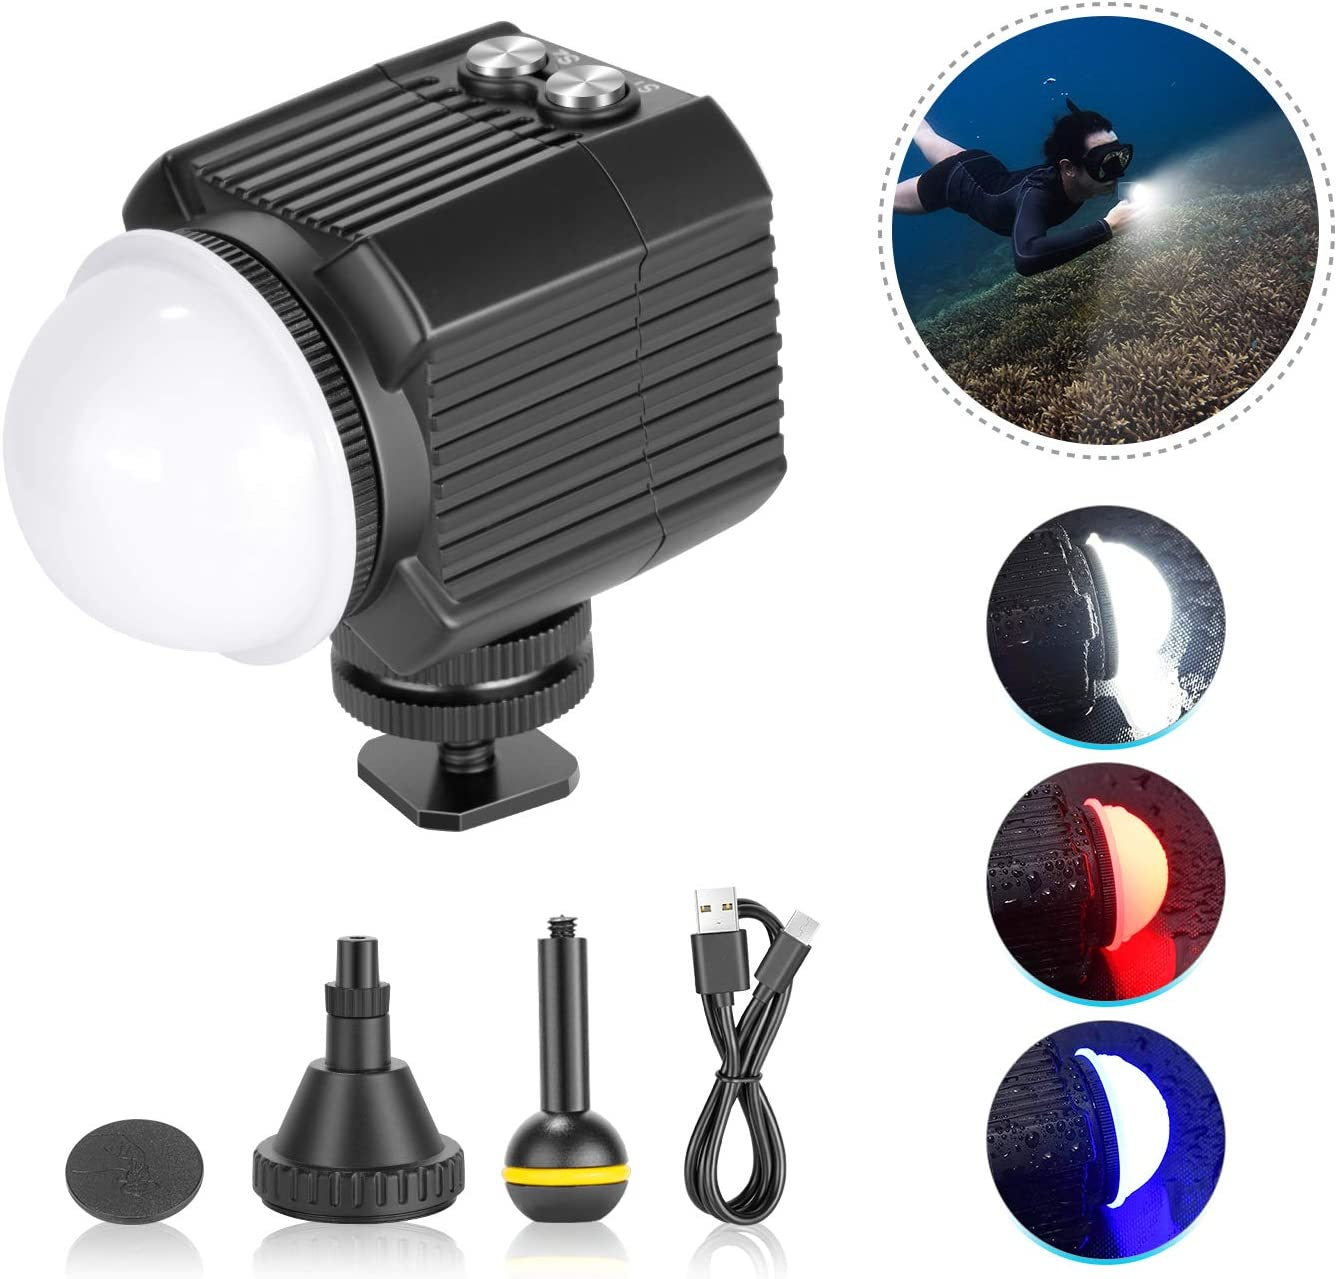 Neewer Underwater Lights Dive Light High Power Fill-in Light 130 Feet Waterproof LED Video Light with 5 Modes Compatible with Yuneec Drones DJI Osmo Pocket Osmo Action GoPro 7//6//5 Canon Nikon DSLRs